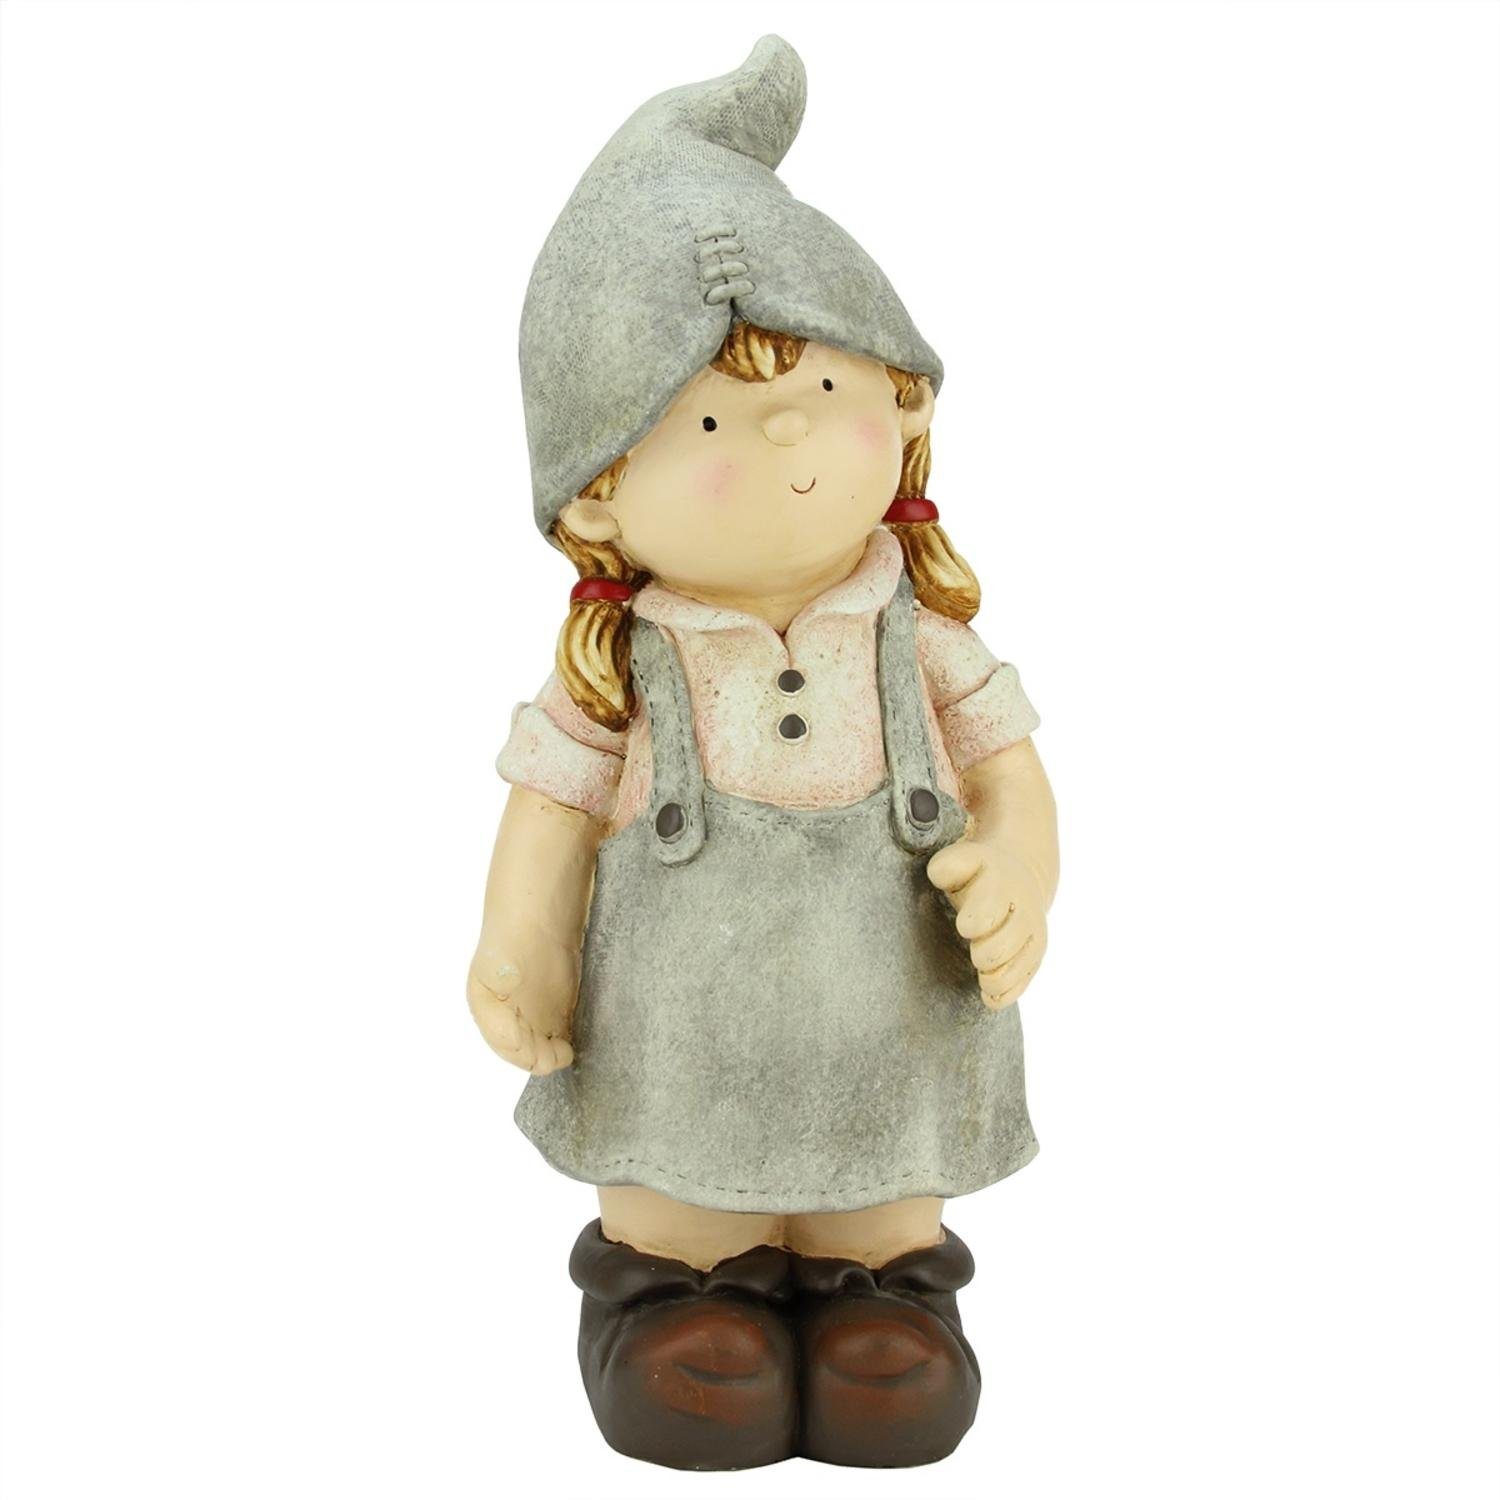 Northlight CB64942 Young Girl Gnome Daydreaming Spring Outdoor Patio Garden Statue Statuary and Fountains, 17.75'', Gray